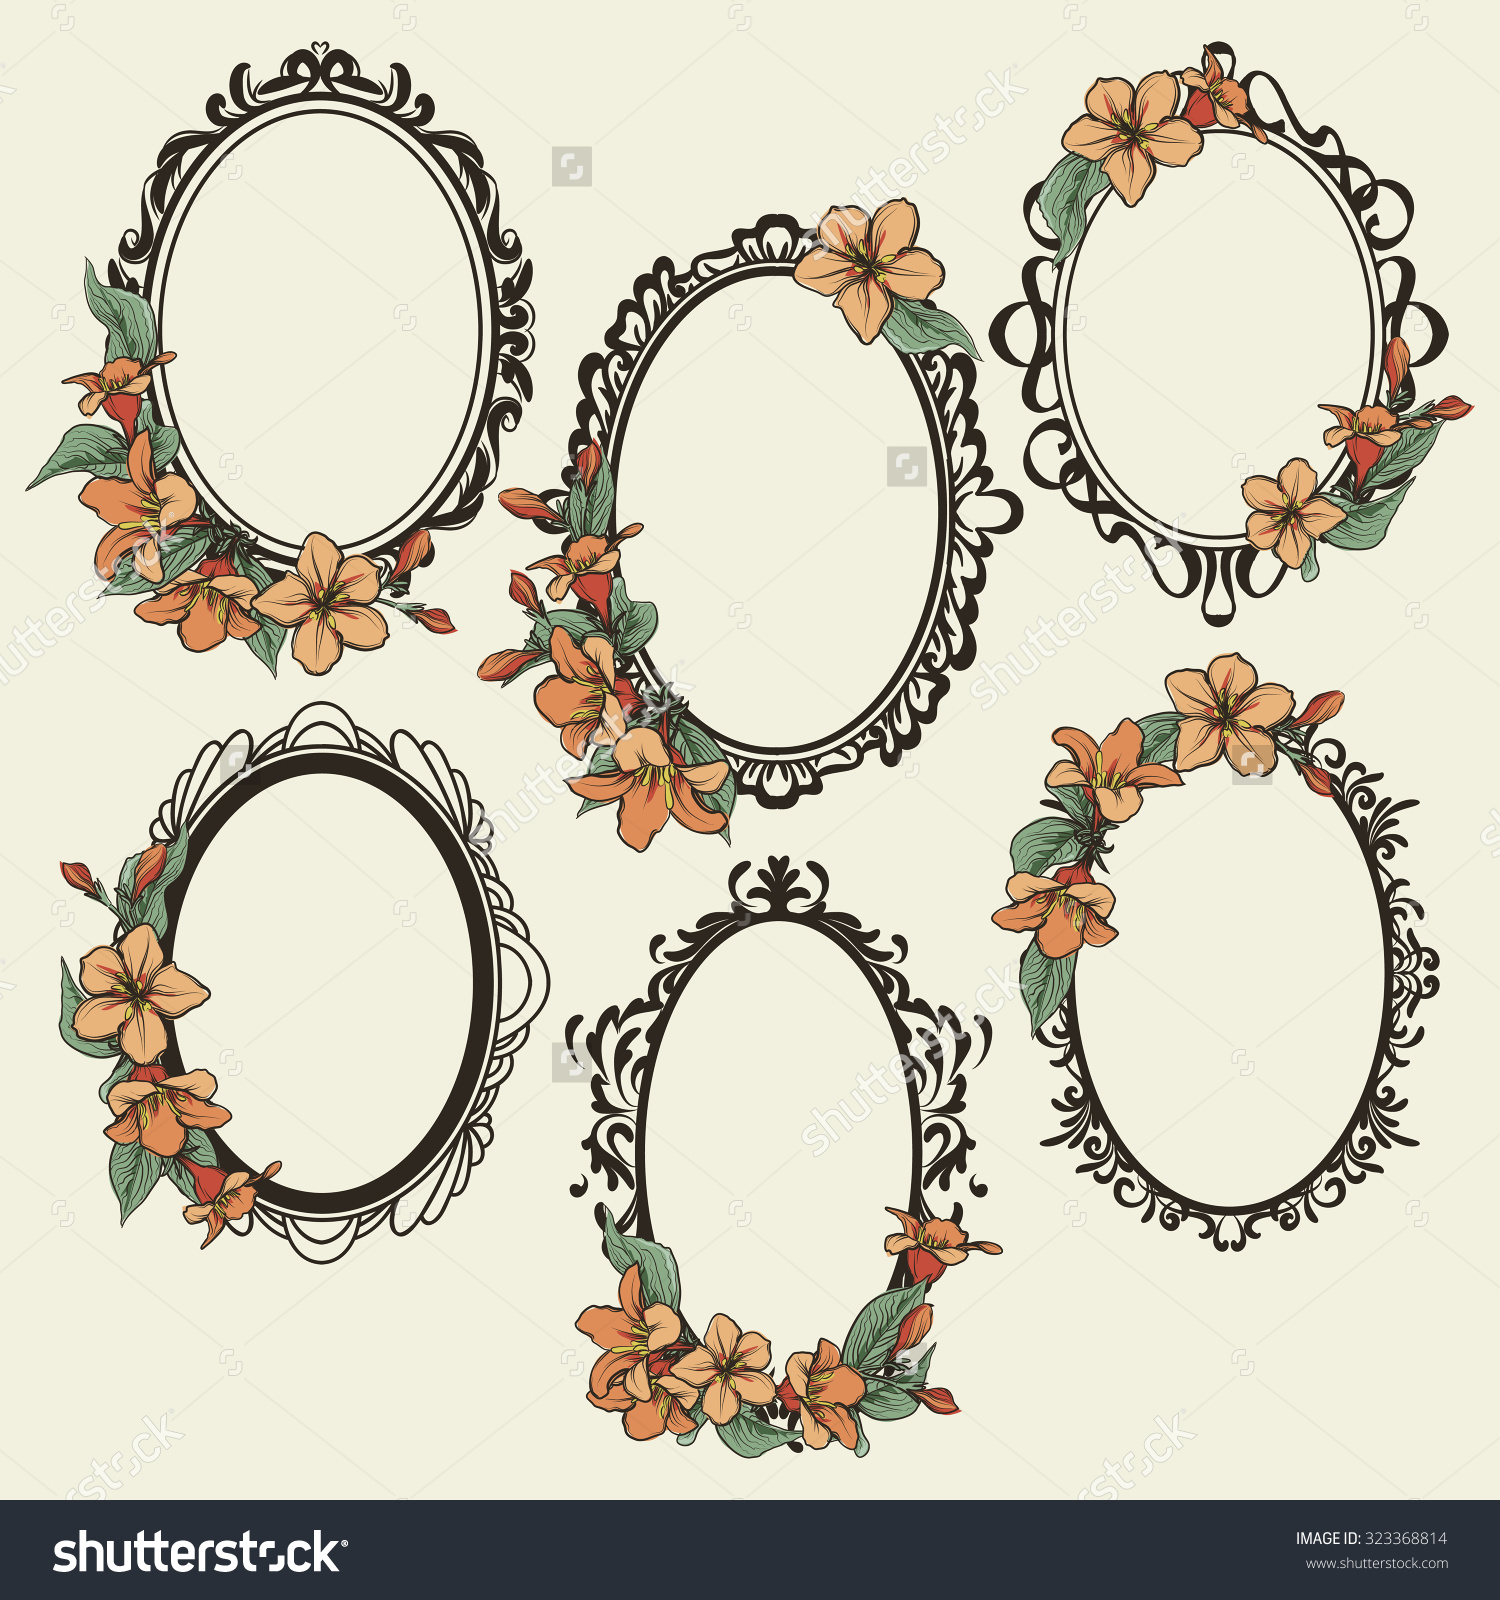 1500x1600 Stock Vector Set Of Vintage Oval Frames Decorated With Flowers